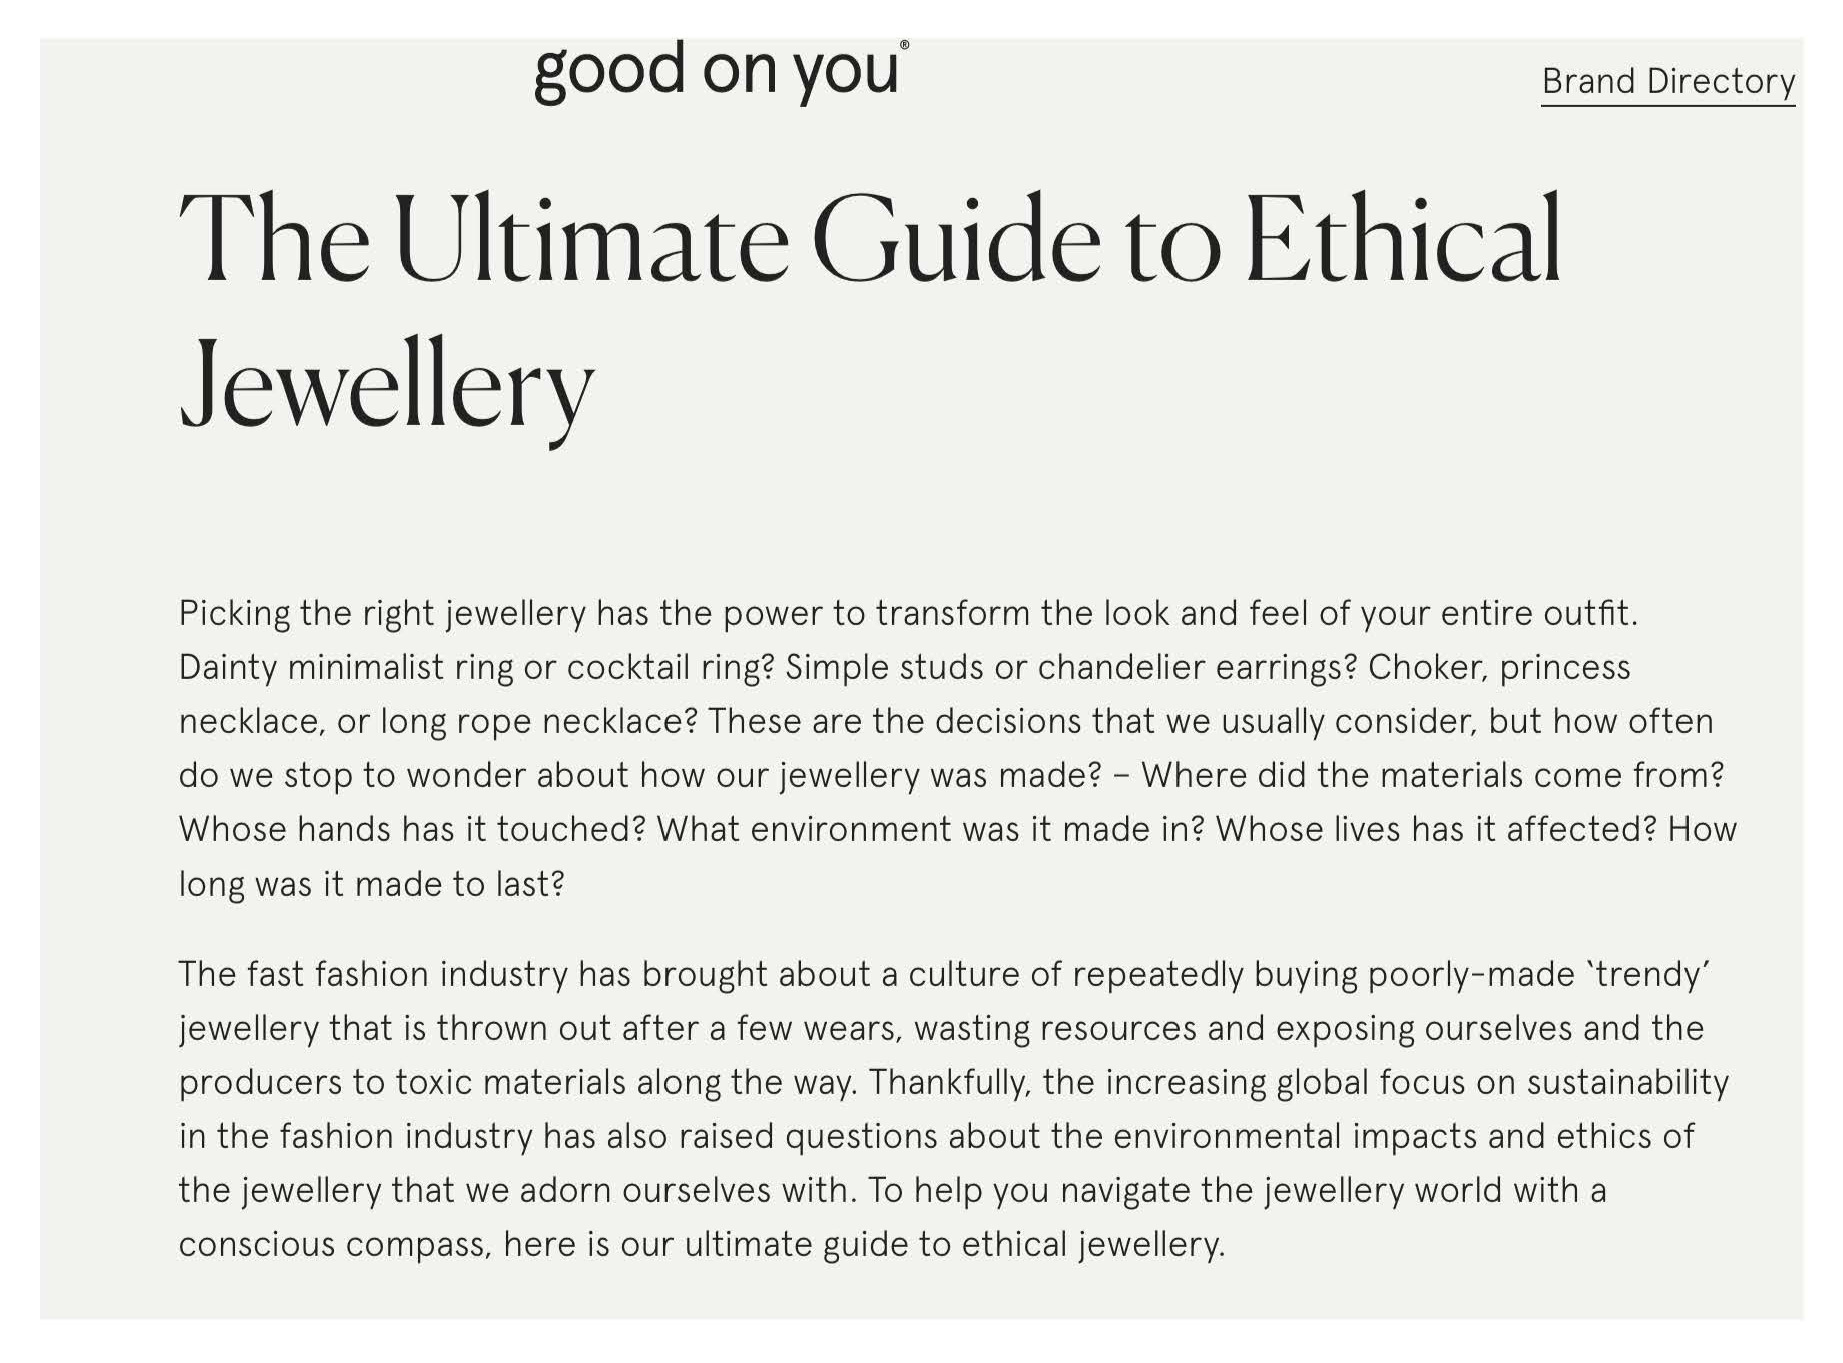 THE ULTIMATE GUIDE TO ETHICAL JEWELLERY